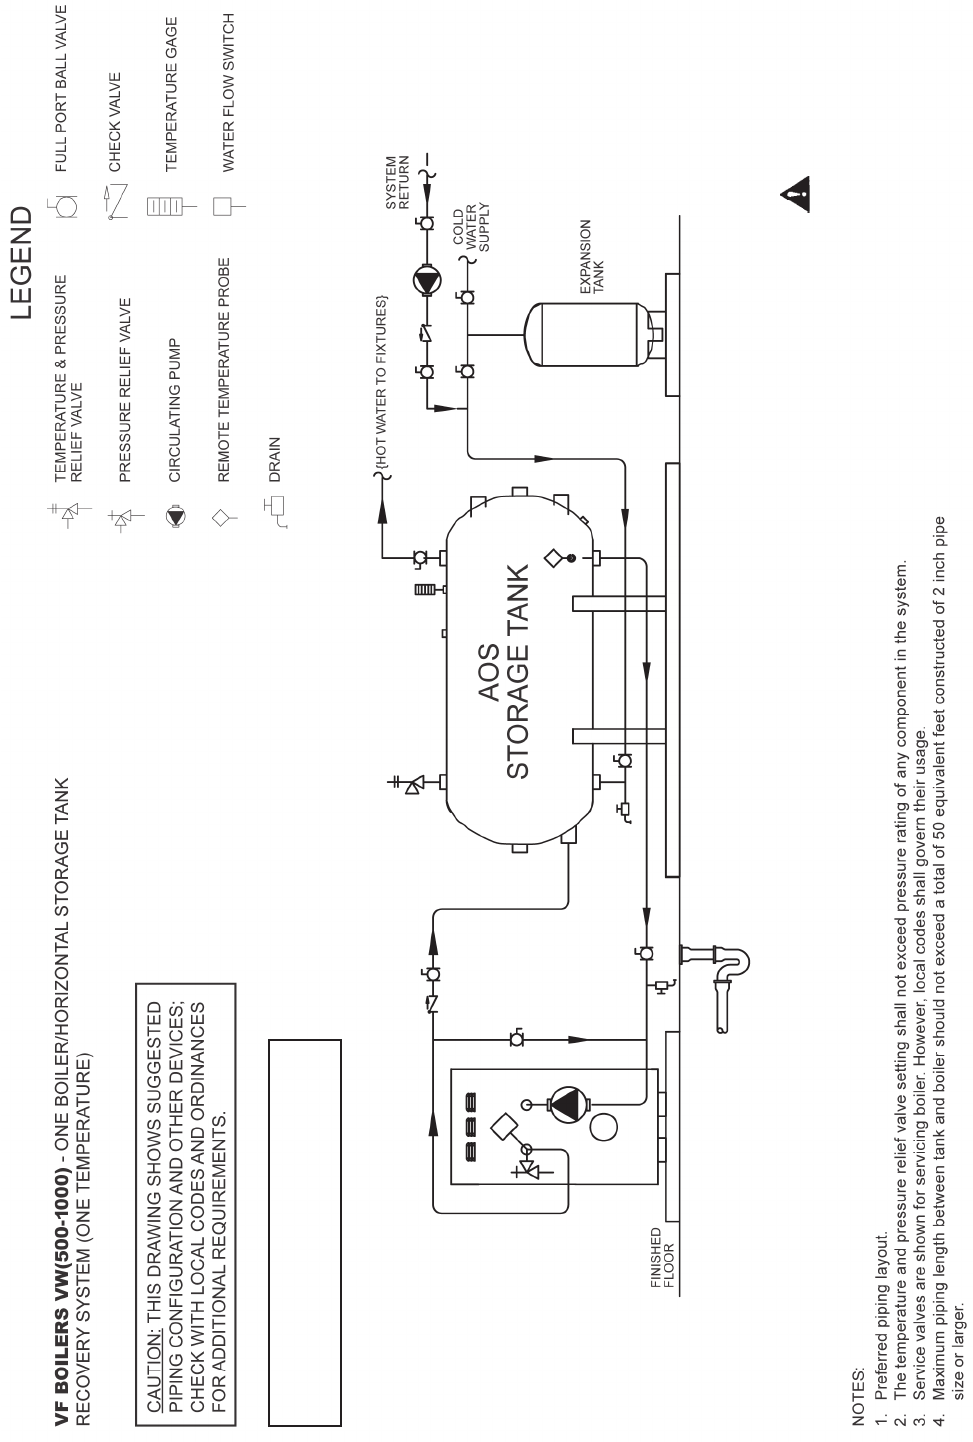 cadillac ats wiring diagram pdf with Audiovox Fmc 1c Wiring Diagram on Radiator For 2011 Chevy Cruze further 04 Gmc Driver Side Mirror Wiring Diagram further Toyota Owners Manual Pdf Car Owners Manuals as well Eagle Talon Headlight Wiring Diagram additionally Audiovox Fmc 1c Wiring Diagram.